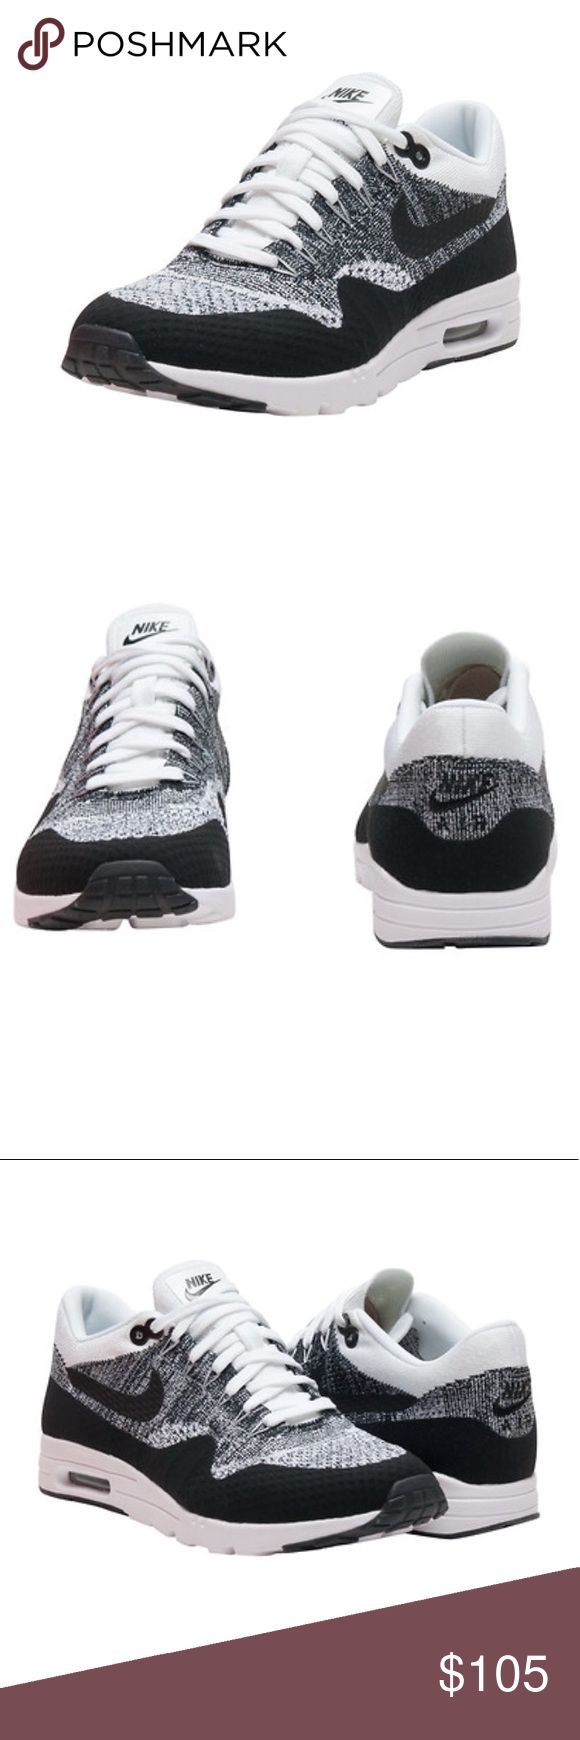 Women's Nike Air Max 1 Ultra Flyknit Sneakers NIKE  Women's low top sneaker  Lace closure  Woven Flyknit yarns integrate areas breathability, stretch and support Ultra midsole for additional comfort  No-sew film overlays enhance durability and structure  Flex grooves in the forefoot let your foot move naturally NWT, comes with box Nike Shoes Sneakers